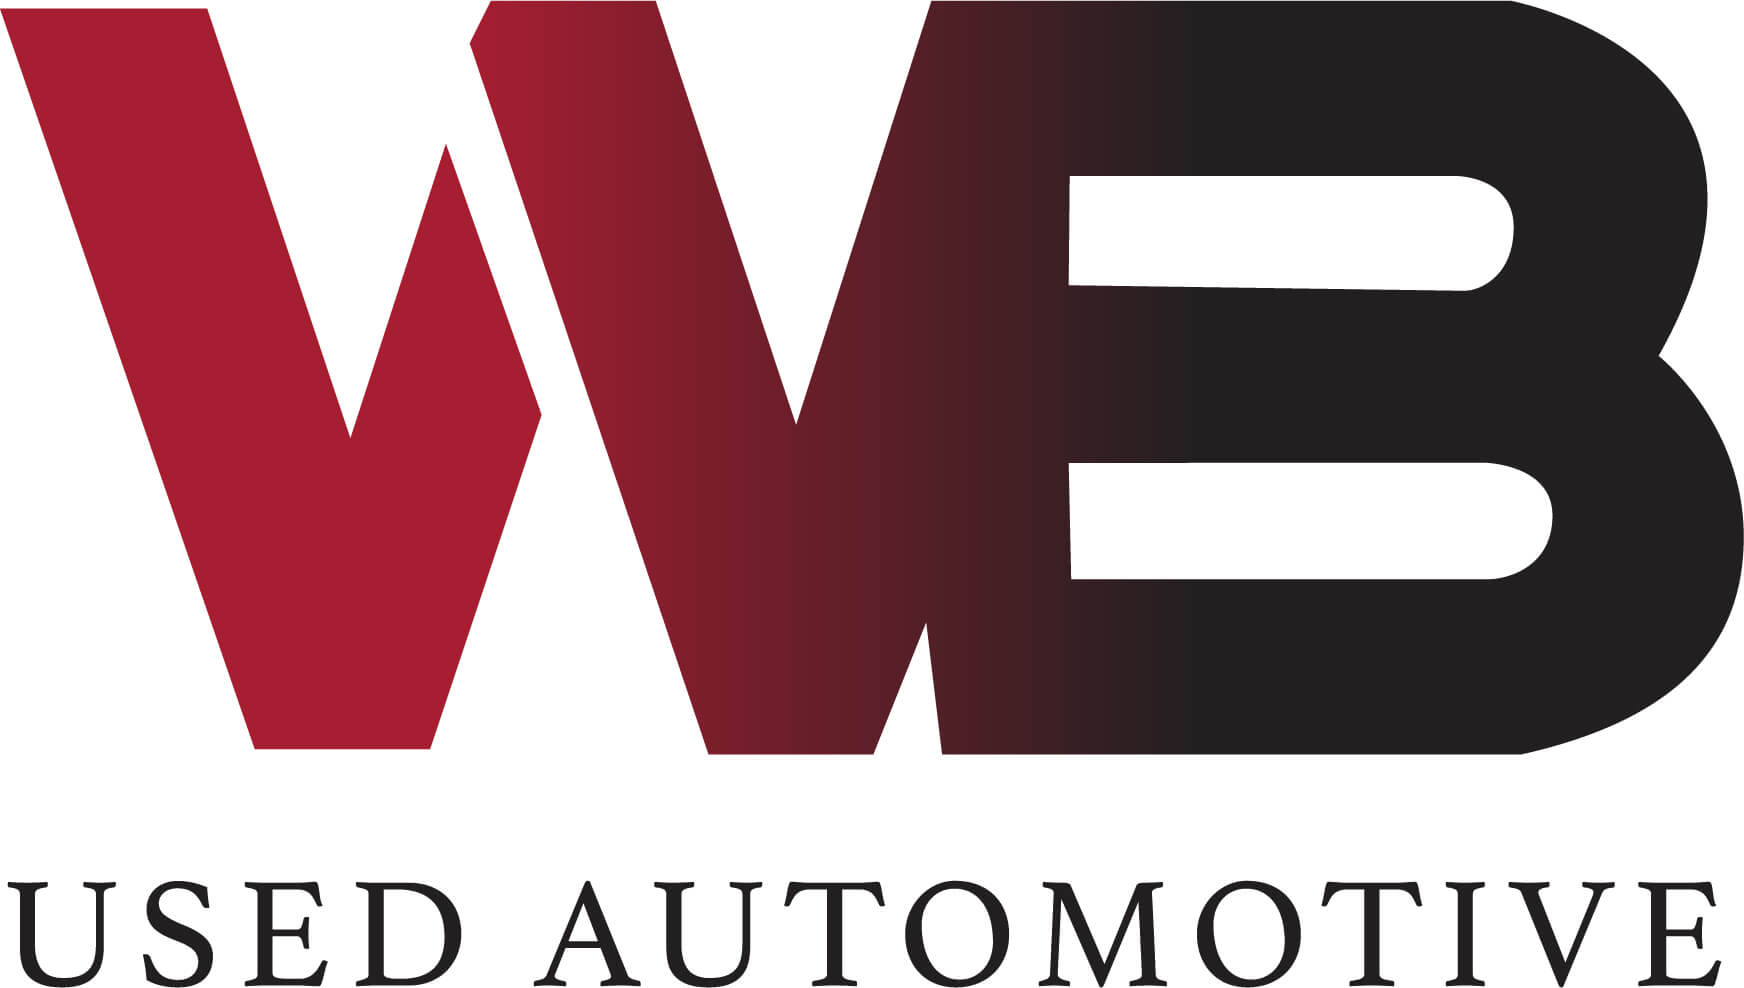 WB Used Automotive